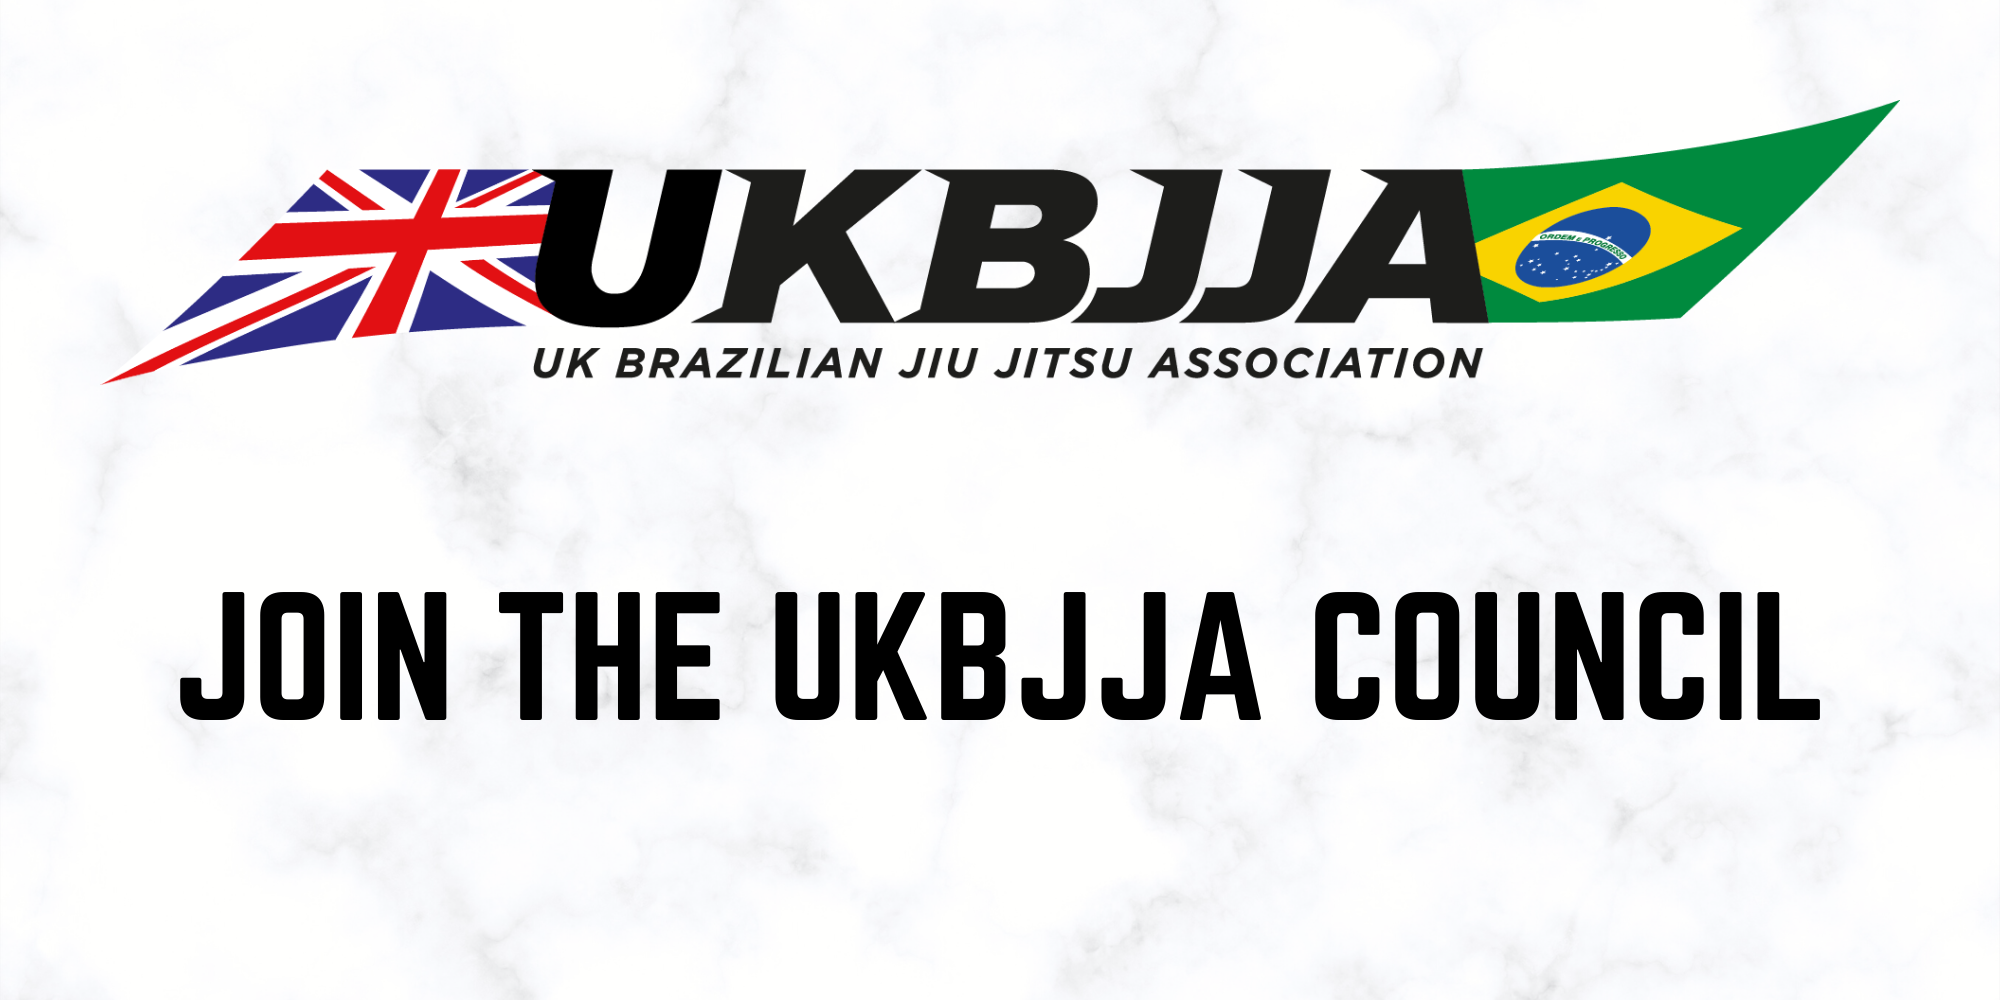 JOIN THE UKBJJA COUNCIL